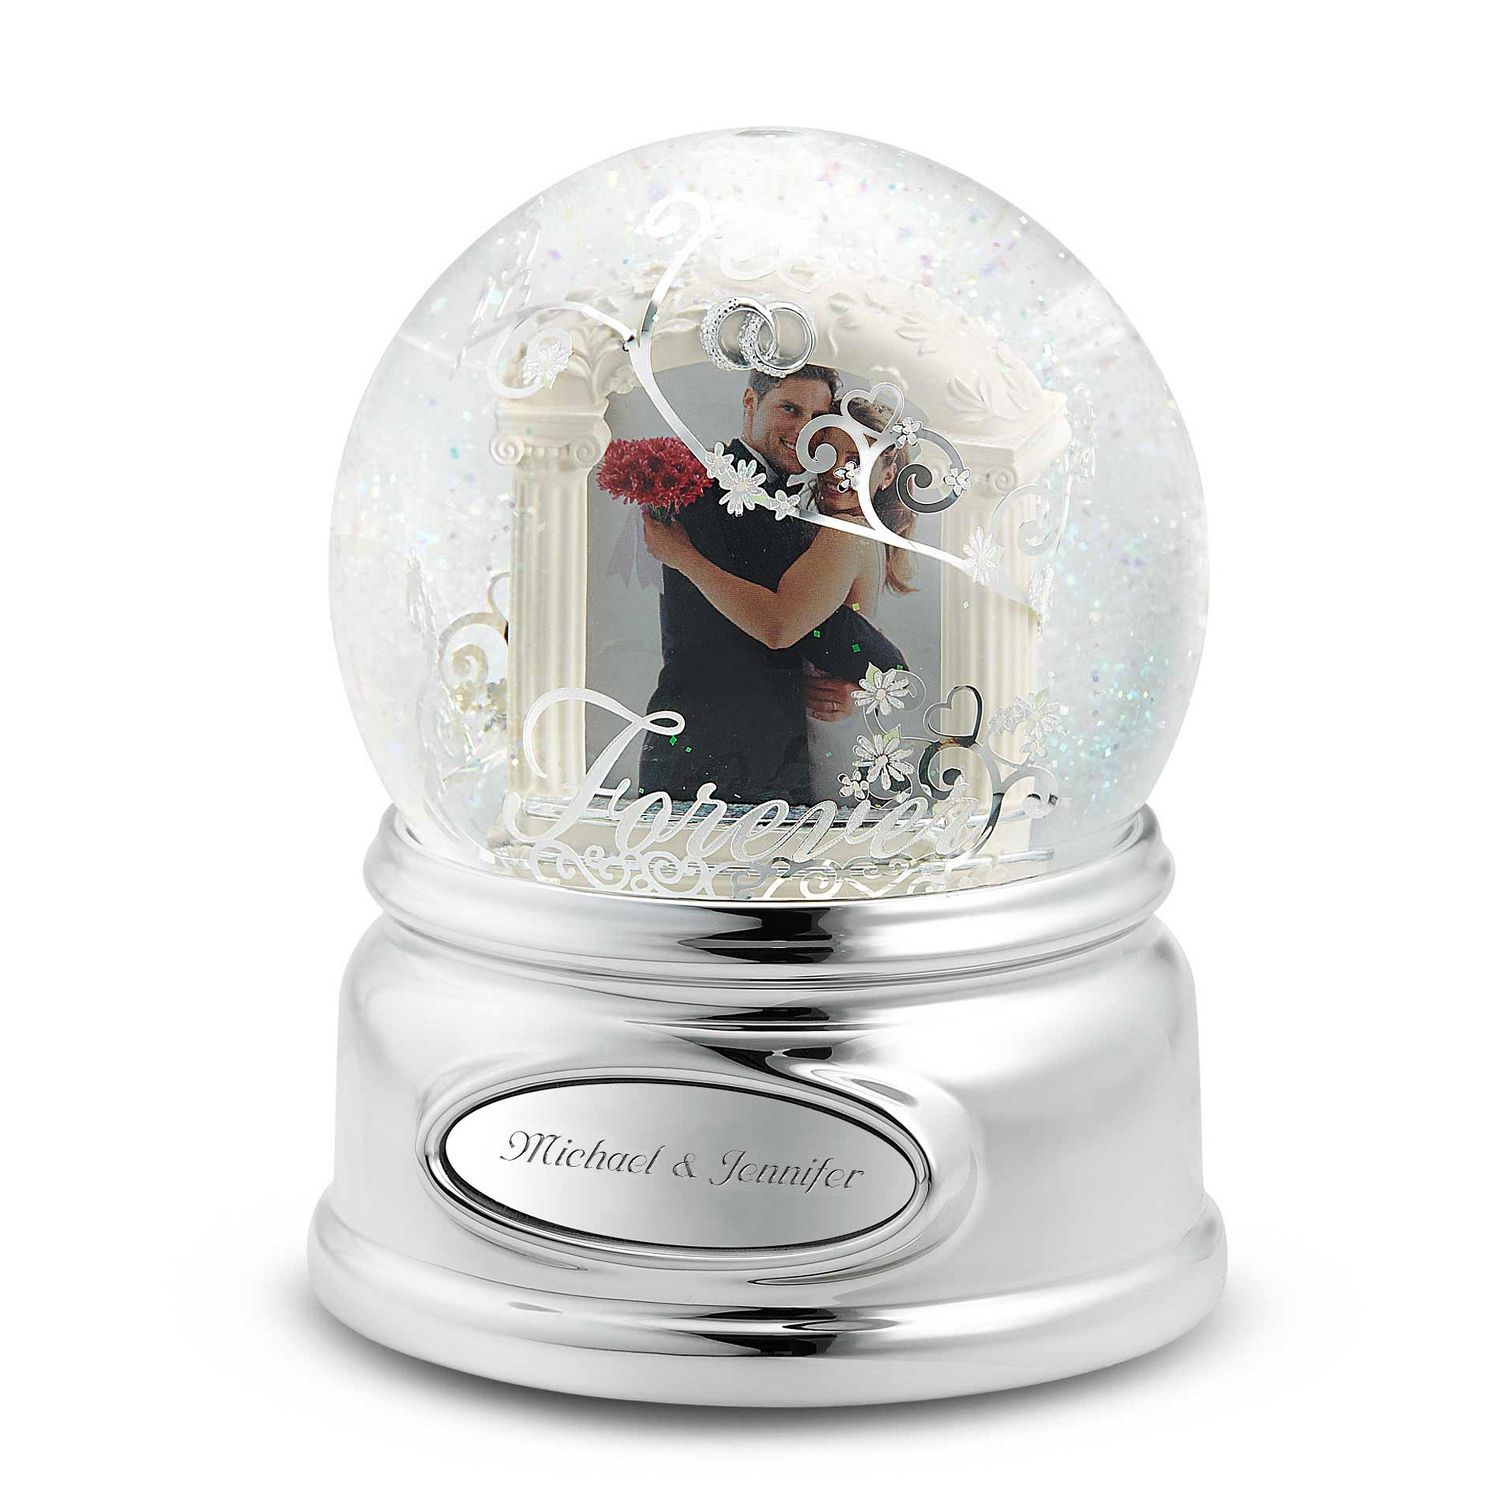 Wedding & Anniversary Snow Globes at Things Remembered